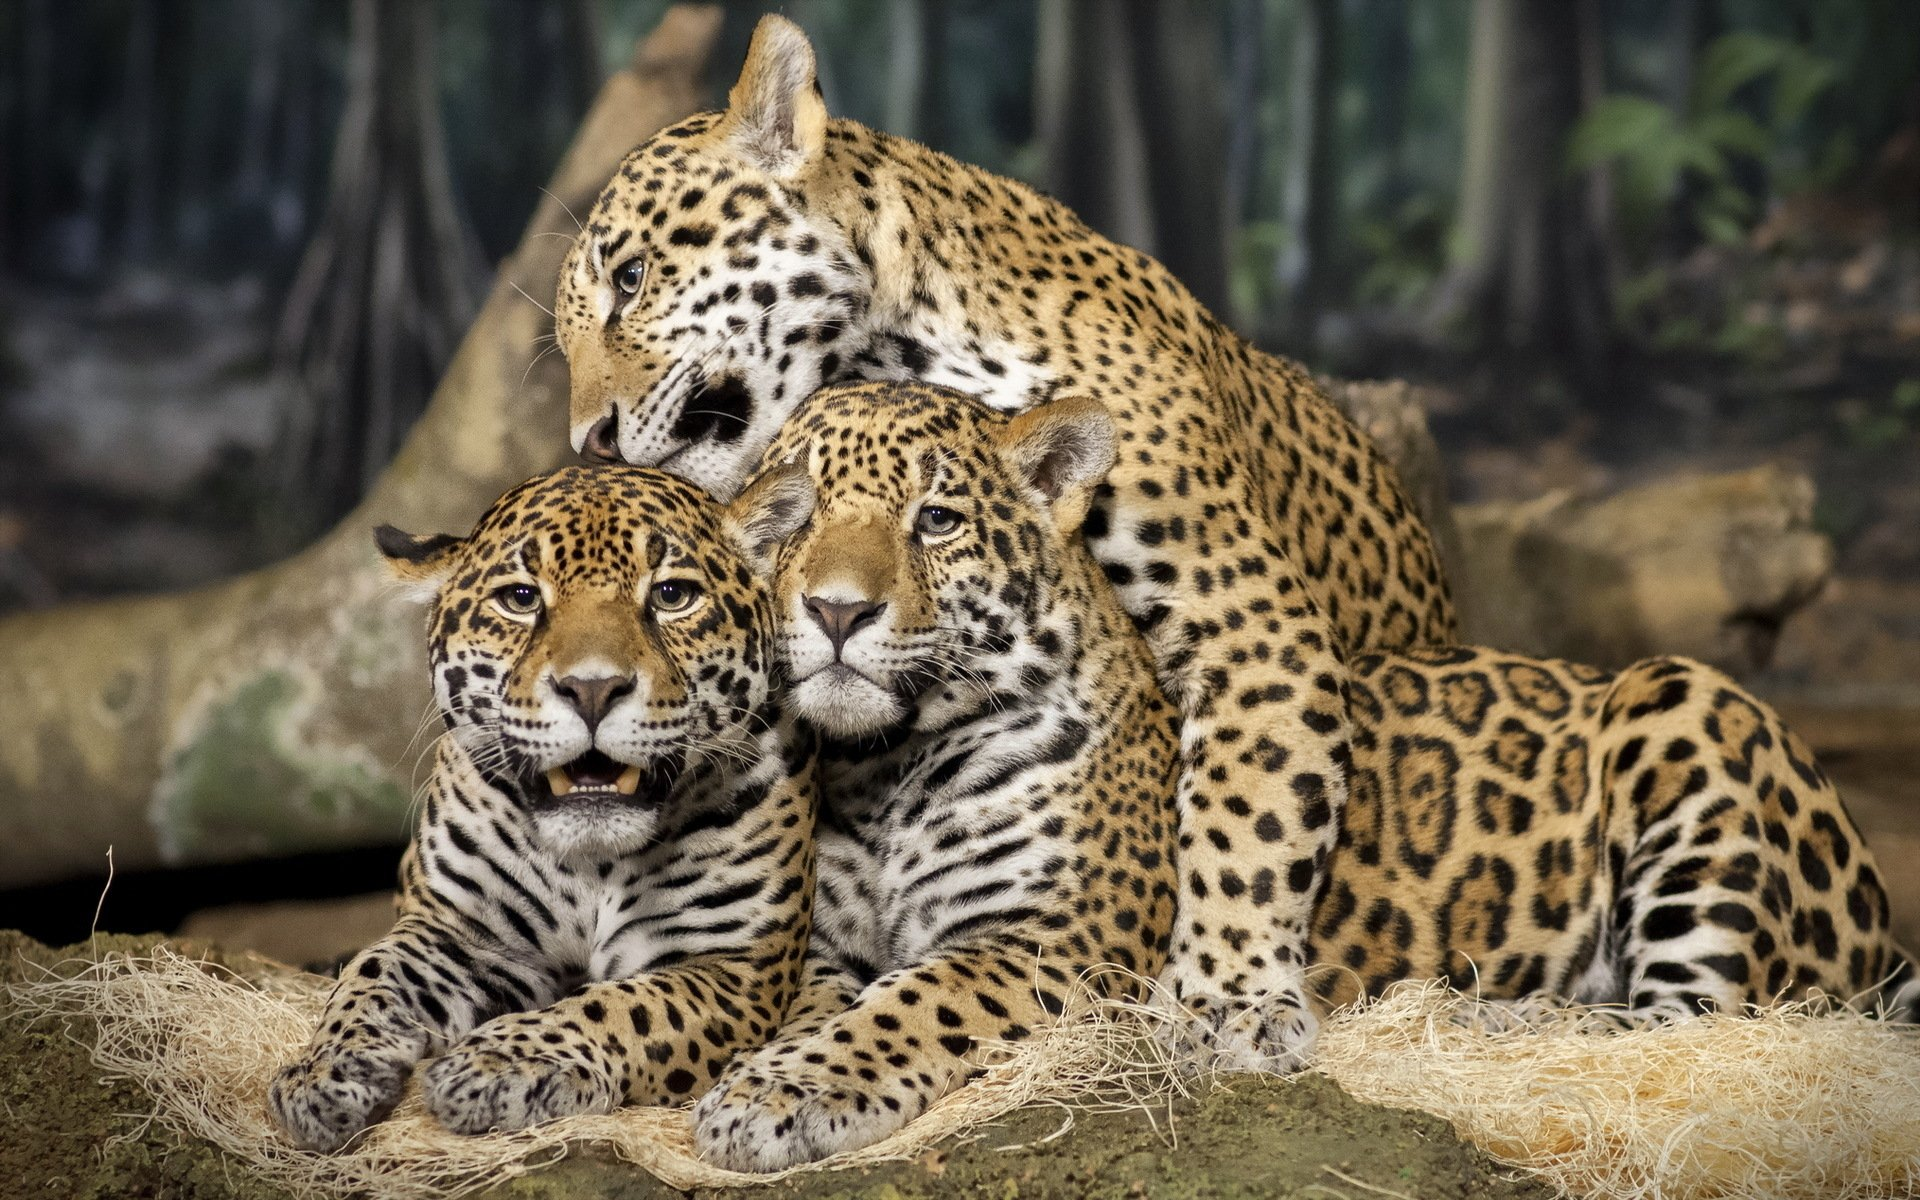 Jaguar full hd wallpaper and hintergrund 1920x1200 id - Jaguar animal hd wallpapers ...